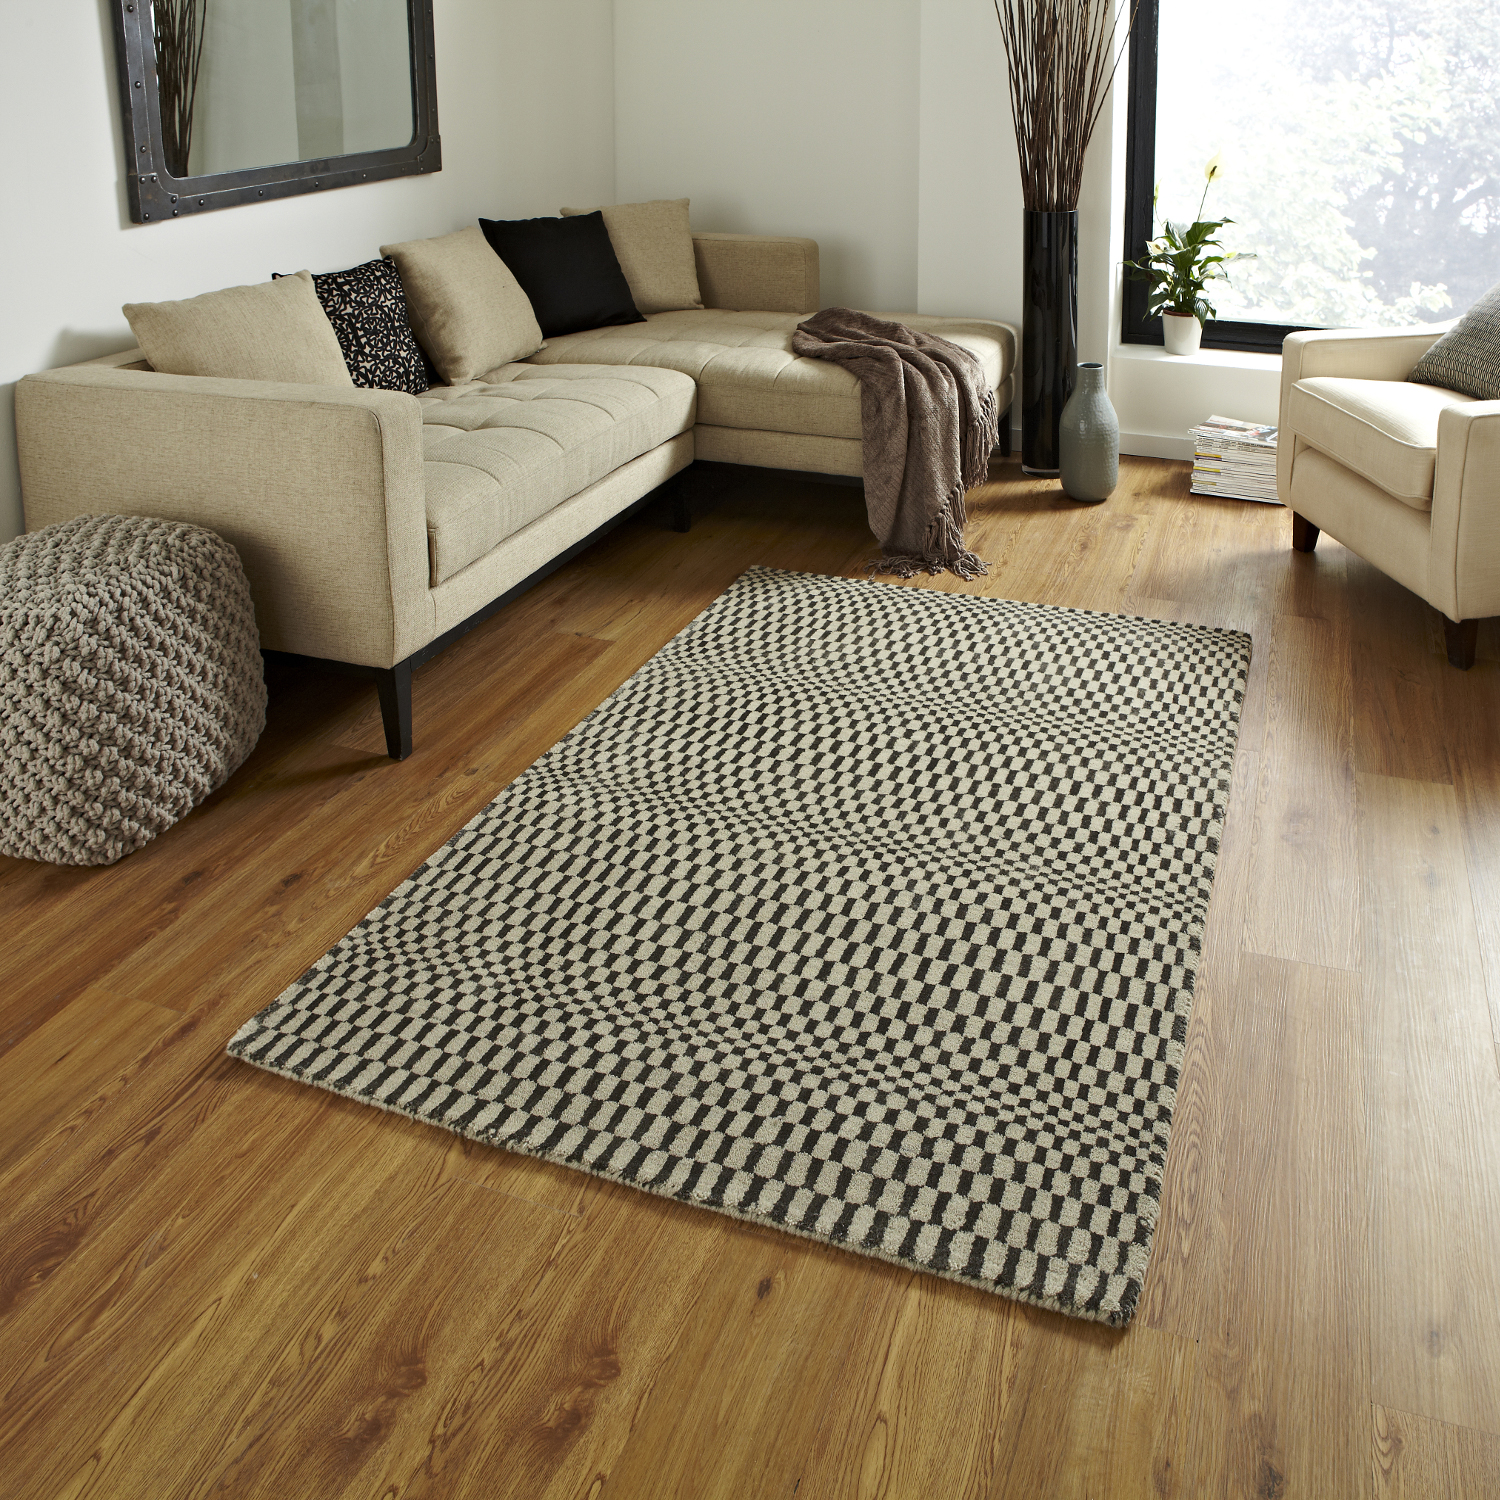 rugs floor rug illusion wave optical mat sonic knotted effect wool hand carpets area carpet flooring diy sell modern